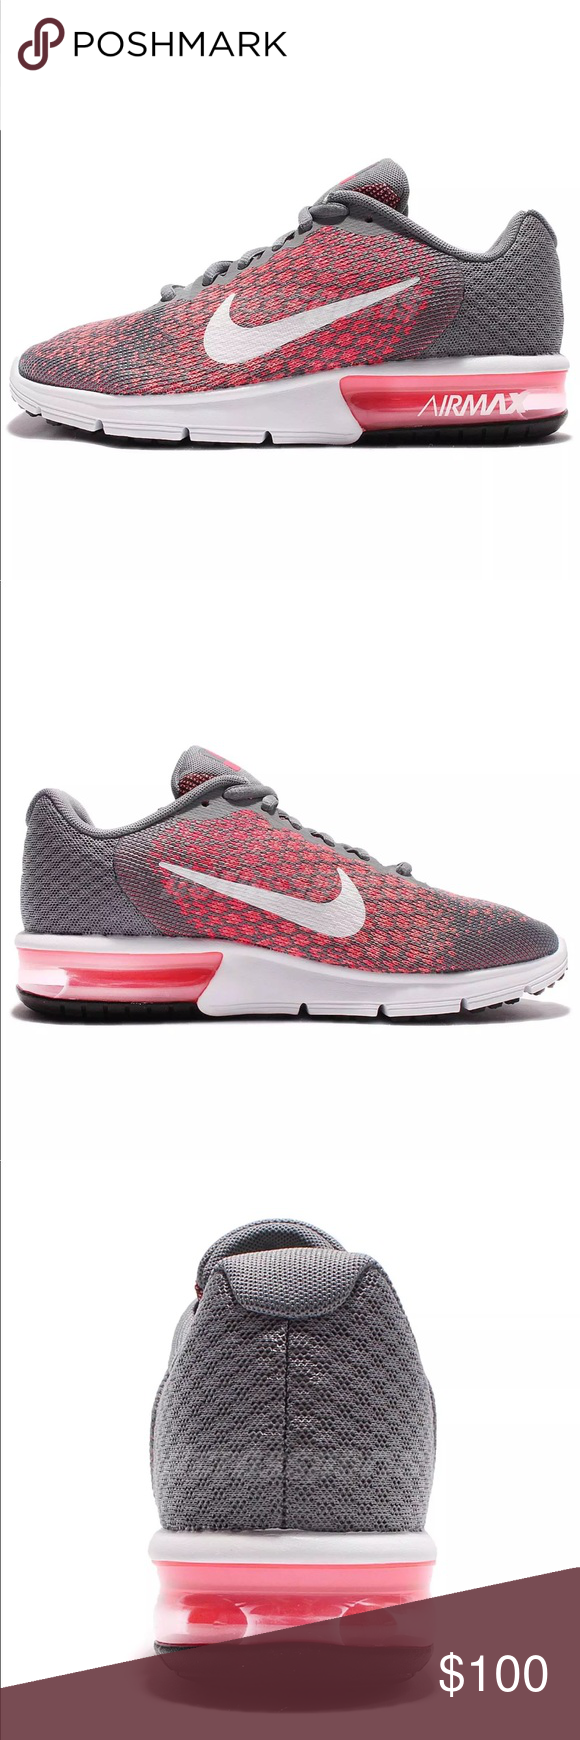 88730203771406 🍄Nike Wmns Nike Air Max Sequent🍄 🍄Wmns Nike Air Max Sequent 2 II Grey  Pink 🍄Women Running Shoes Sneakers 👟 Size 7.5 Nike Shoes Sneakers